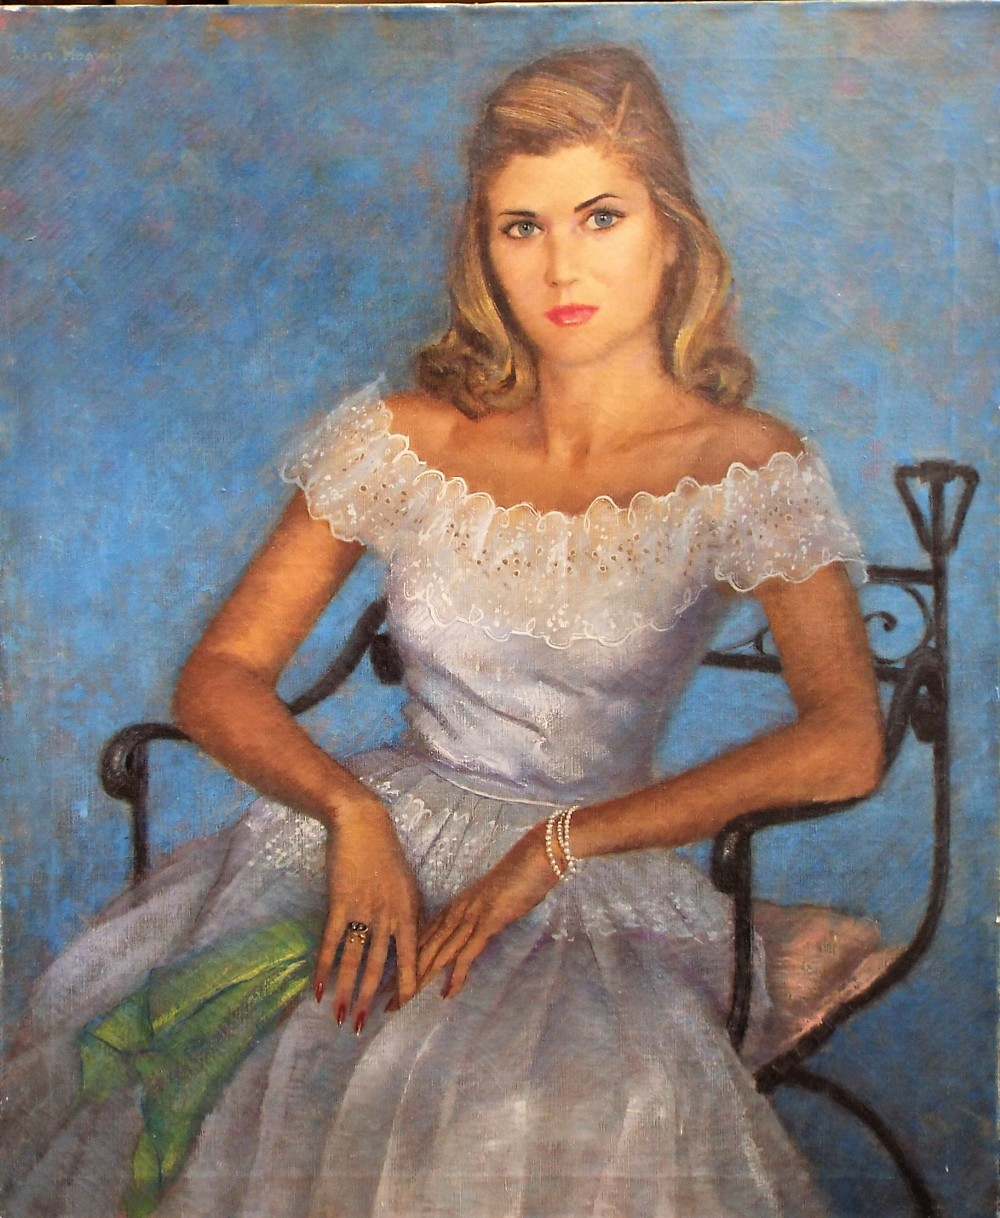 Lot 158 - Jan Hoowij (1907-1987 Dutch/American) - Portrait of a Hollywood starlet, signed and dated 1946,